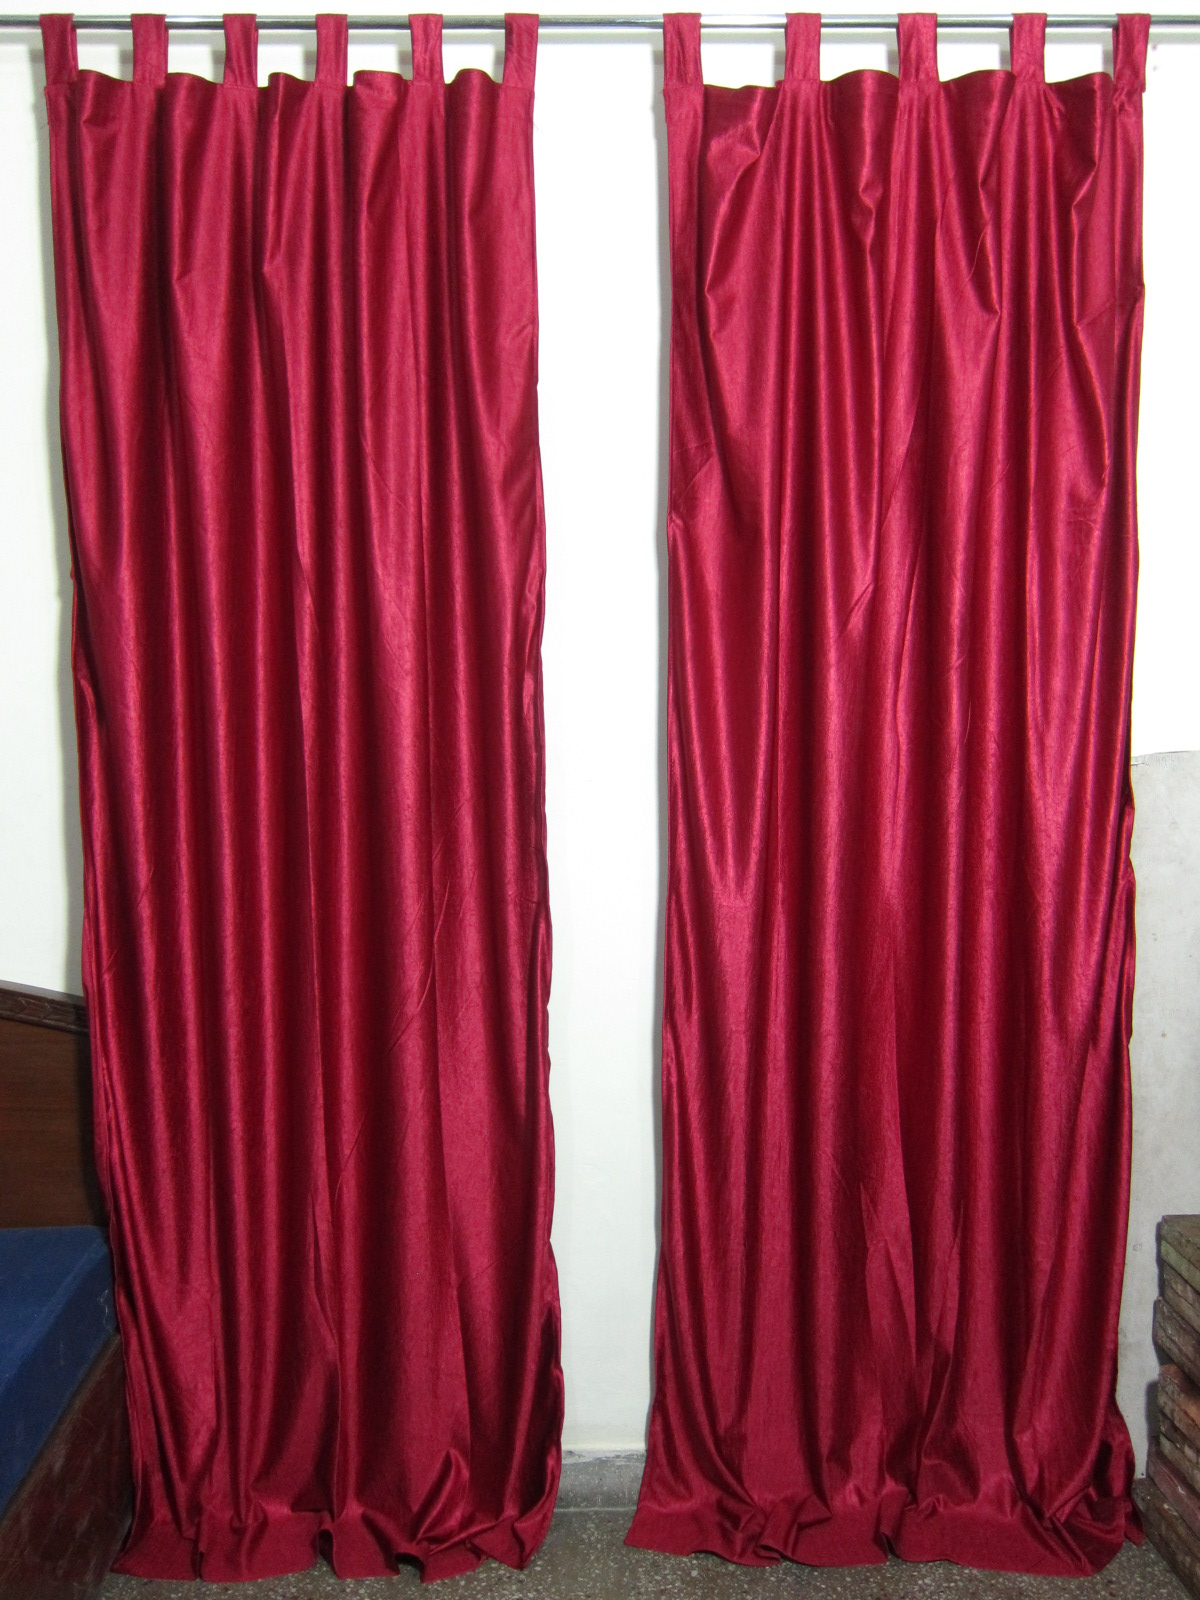 "Mogul Indian Sari Curtains Maroon Tab Top Drape   Panel Pair Window Treatment Ideas (Size: Length: 84"".) by"